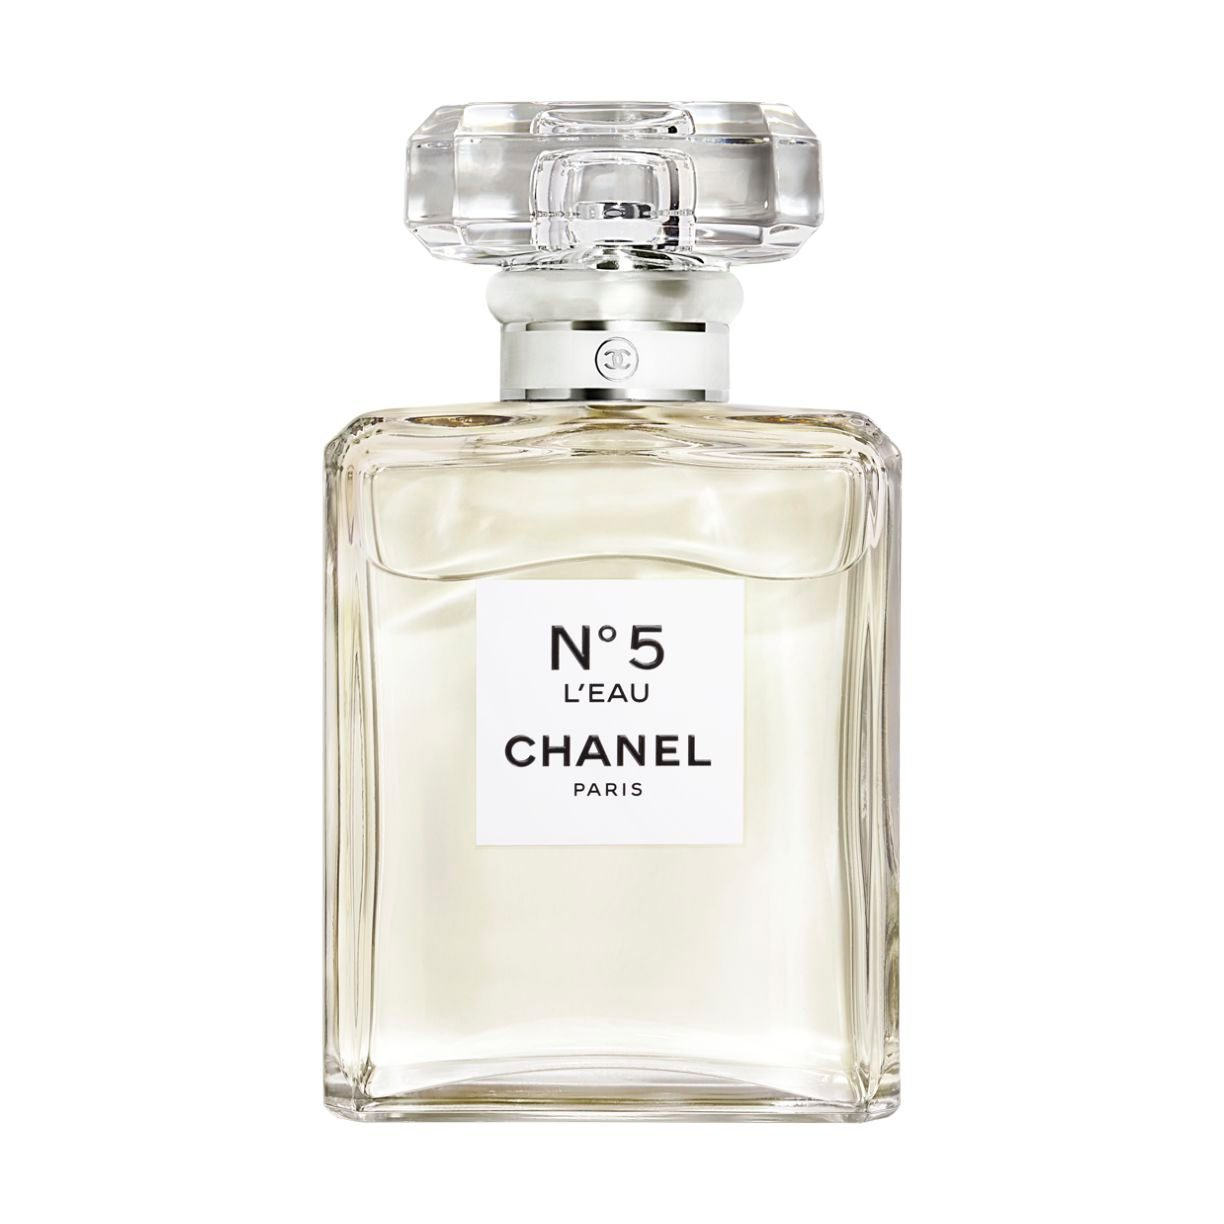 N°5 L'EAU EAU DE TOILETTE SPRAY